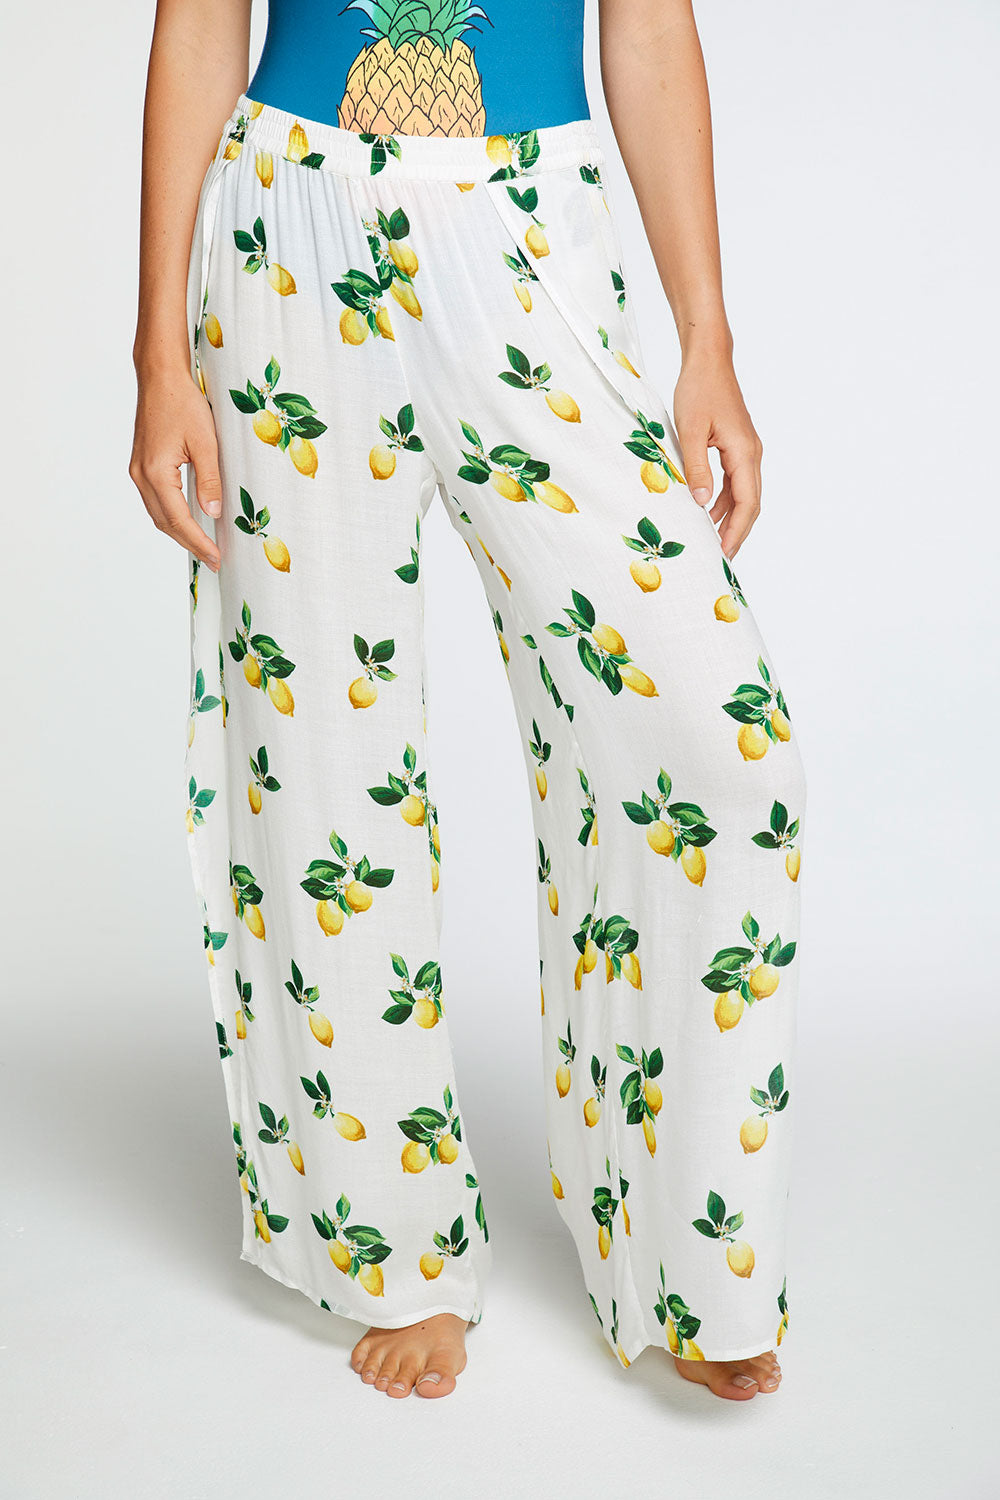 Lemonade Cover-Up Pants WOMENS chaserbrand4.myshopify.com